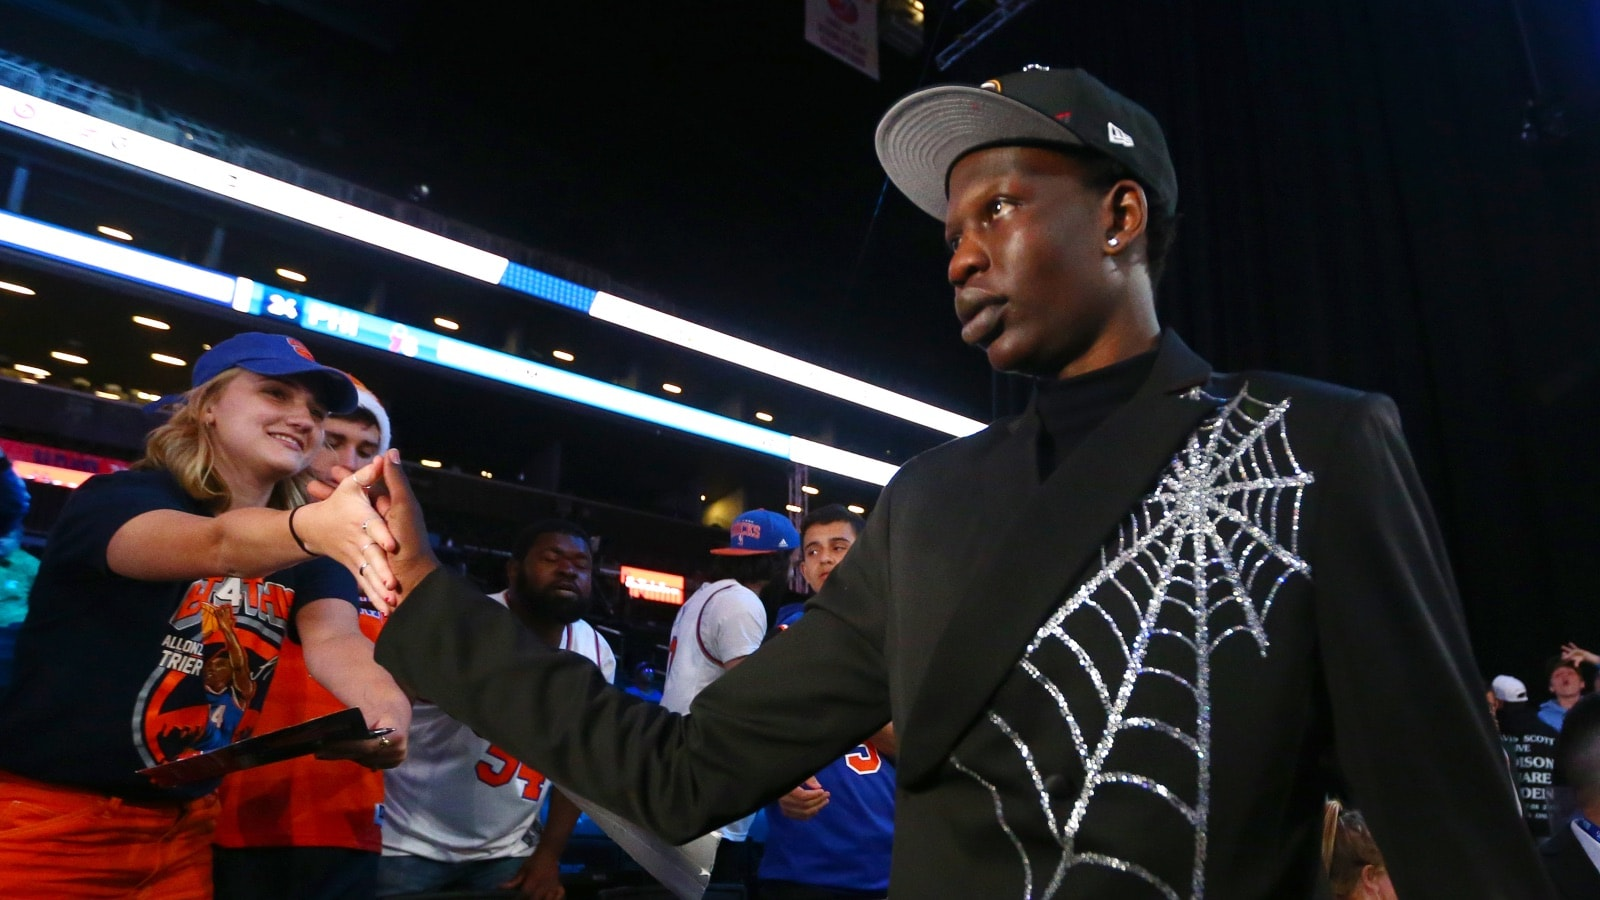 Bol Bol high fives fans after being selected forty-fourth overall by the Miami Heat during the 2019 NBA Draft on June 20, 2019 at the Barclays Center in Brooklyn, New York.